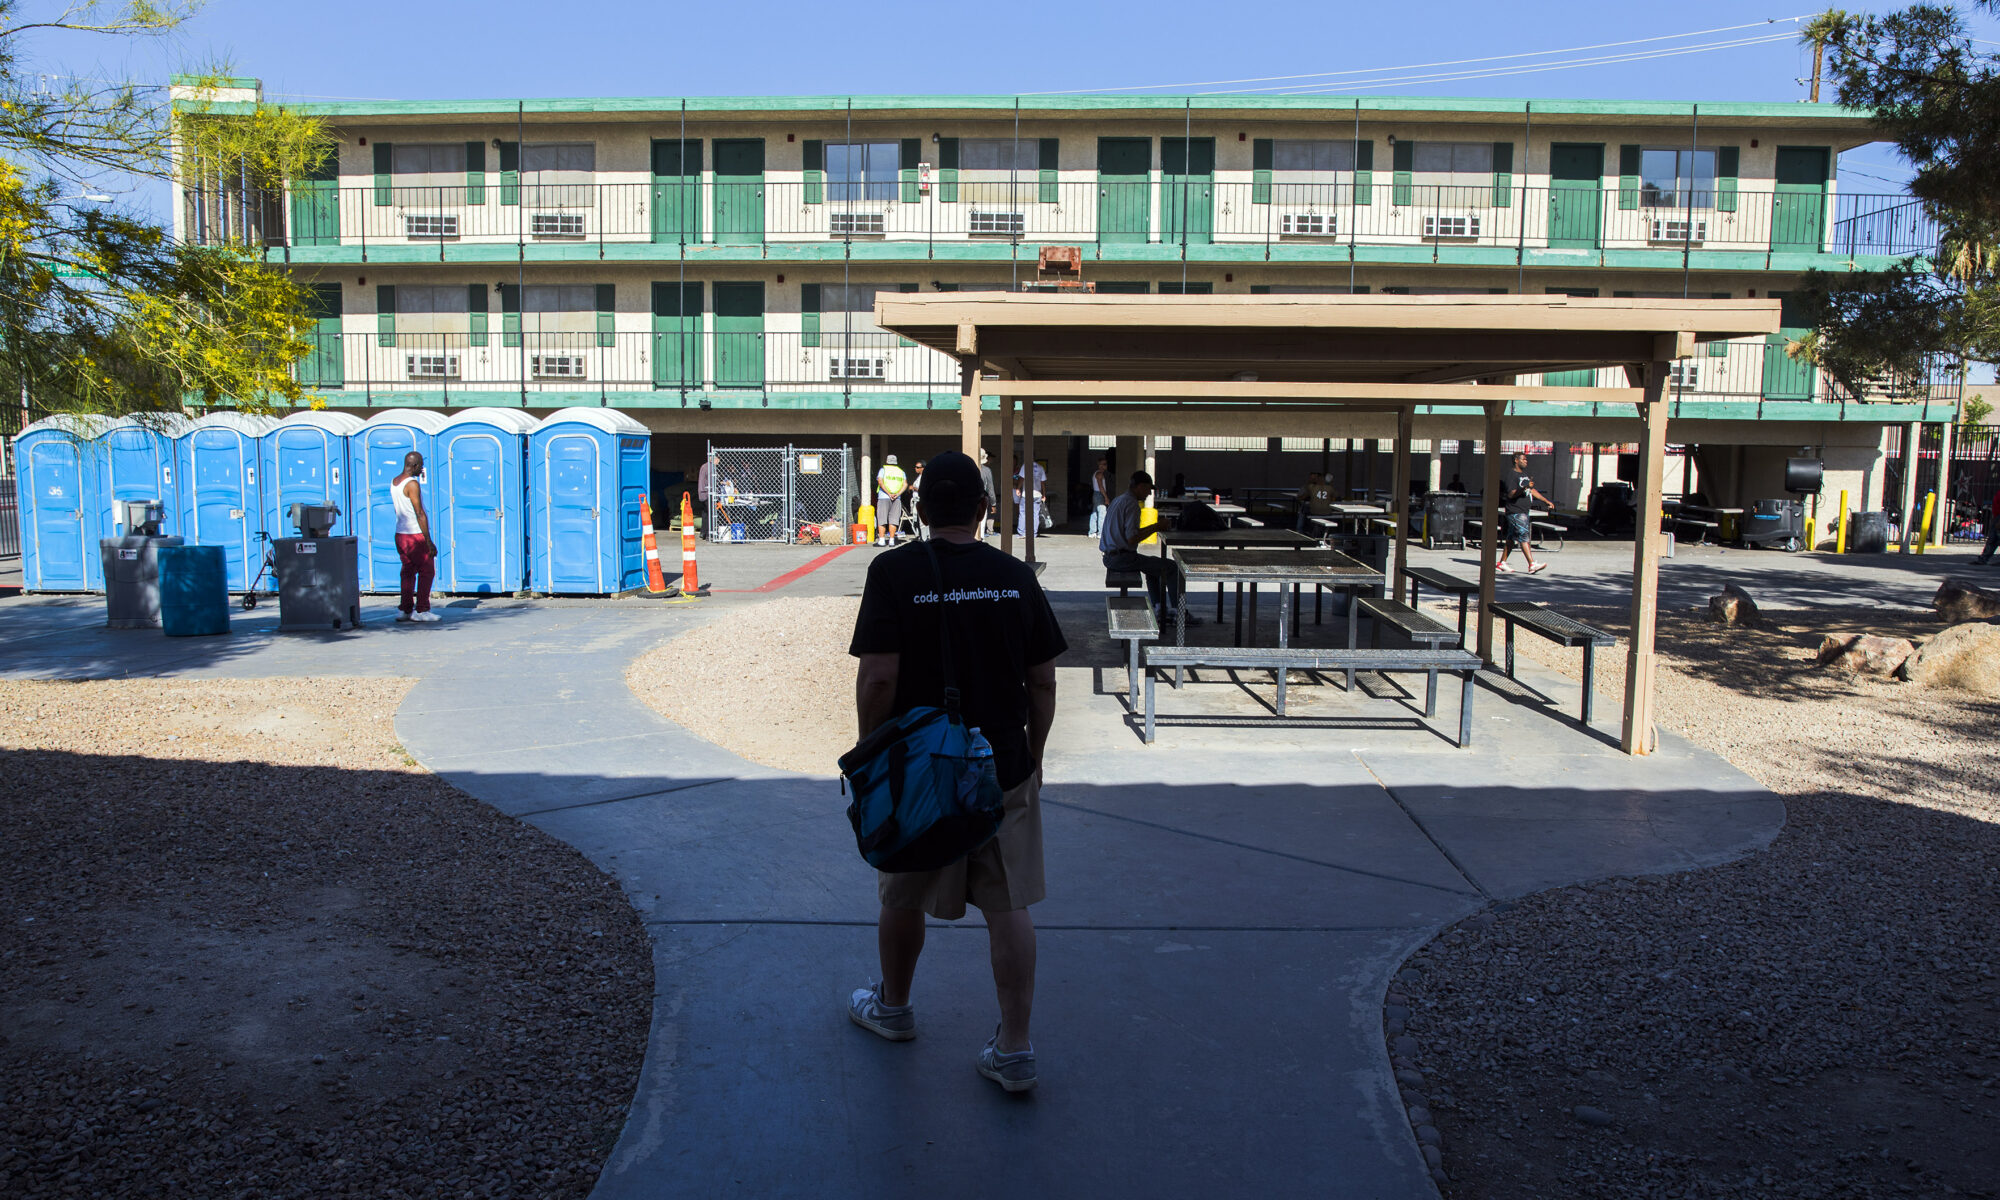 The city of Las Vegas operated The Courtyard provides day shelter in the homeless corridor on Foremaster Street